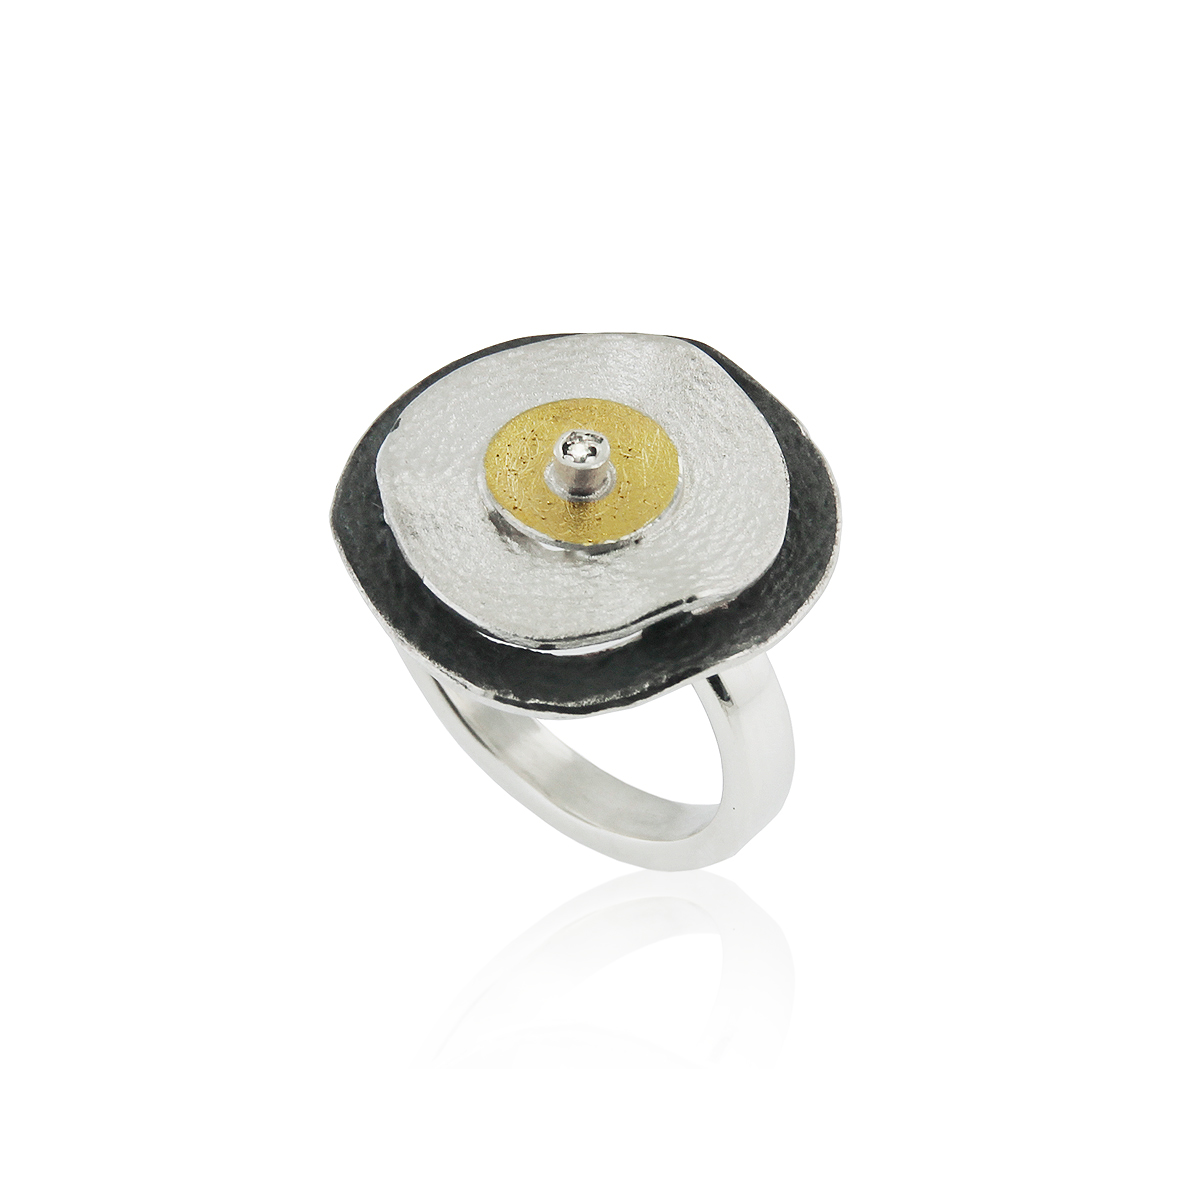 SILVER & GOLD RING WITH DIAMOND